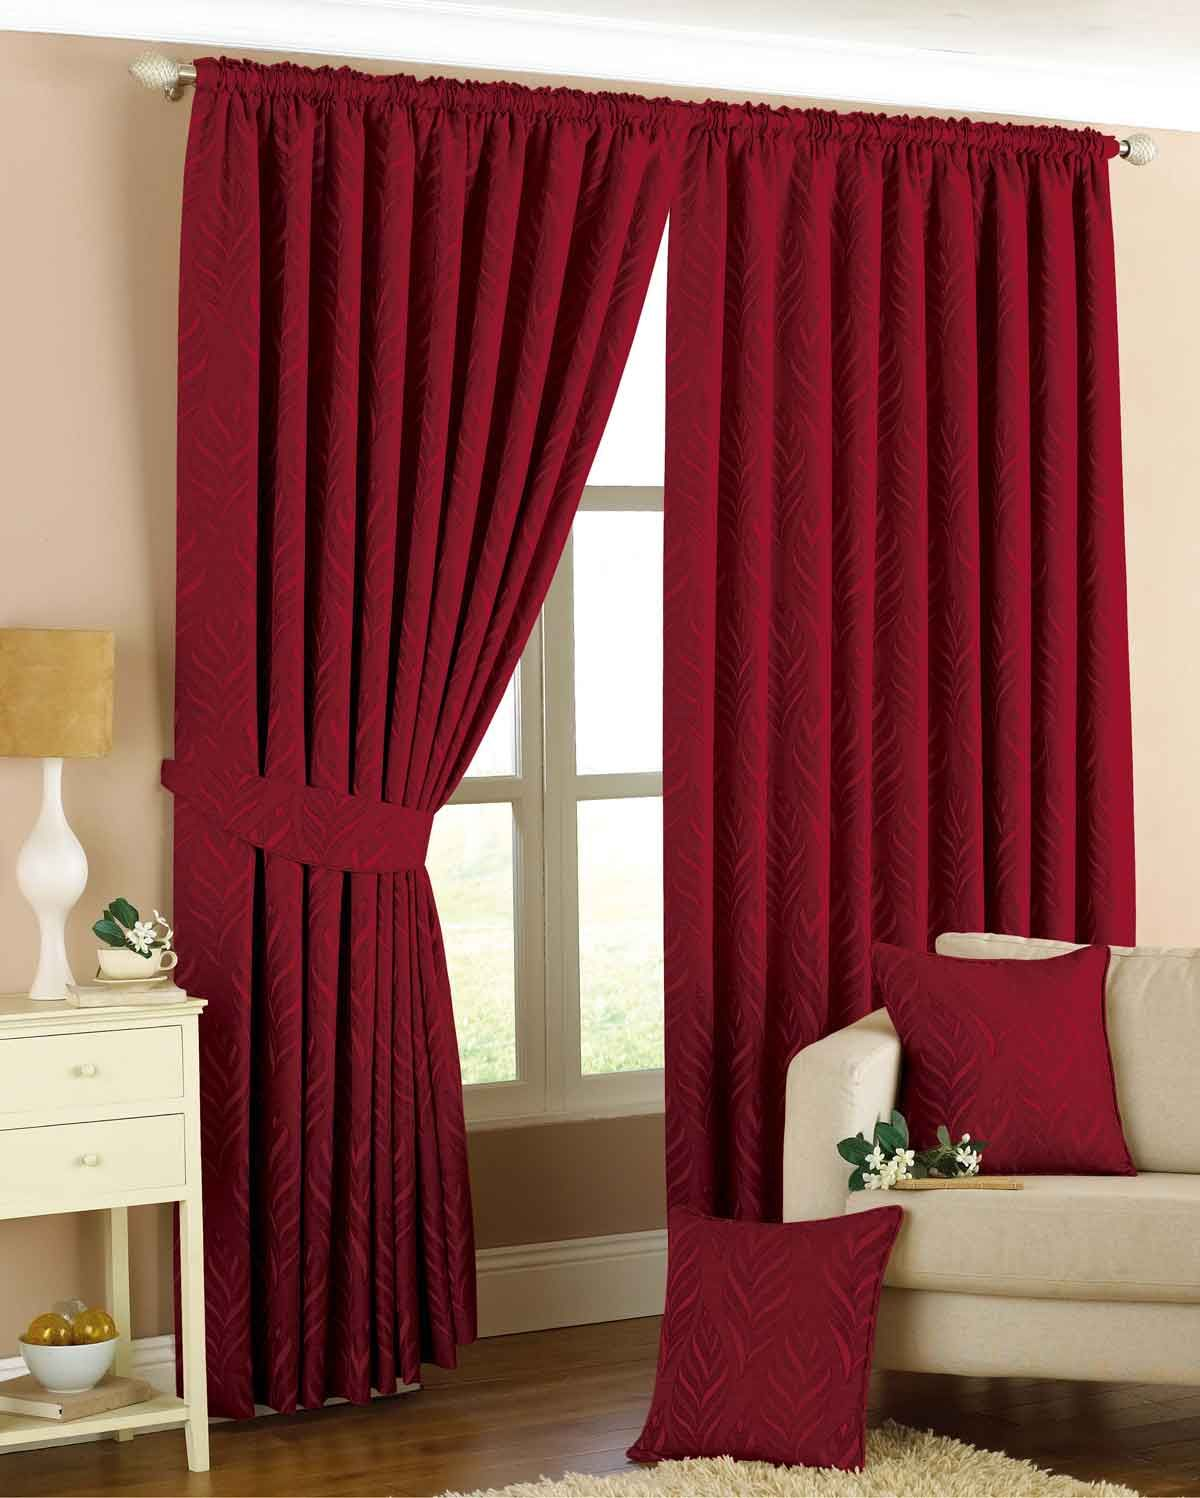 Narrow Leaf Ready Maded Lined Curtains Red Home Additions Room